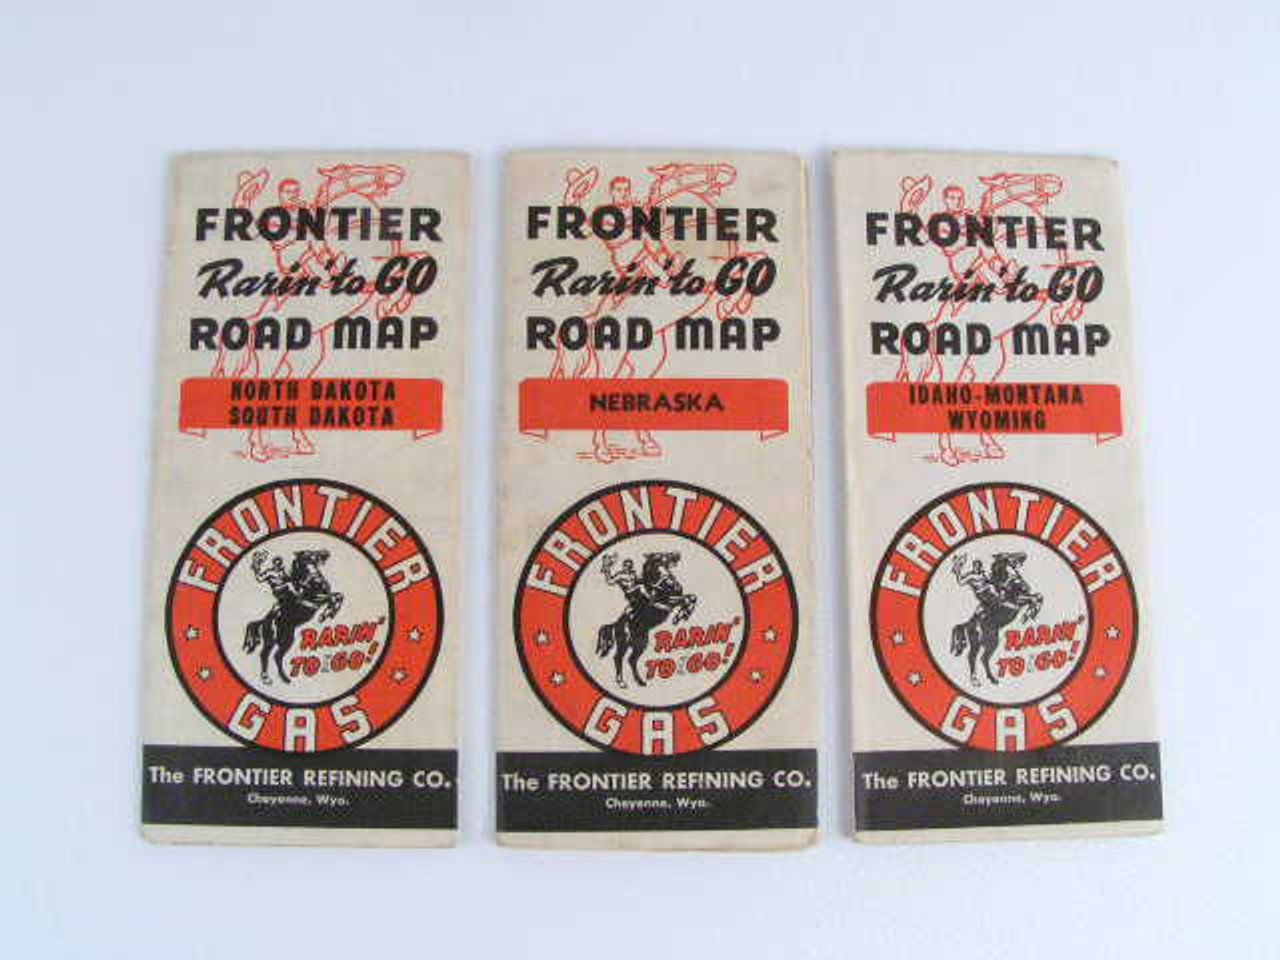 These are vintage Frontier Gas